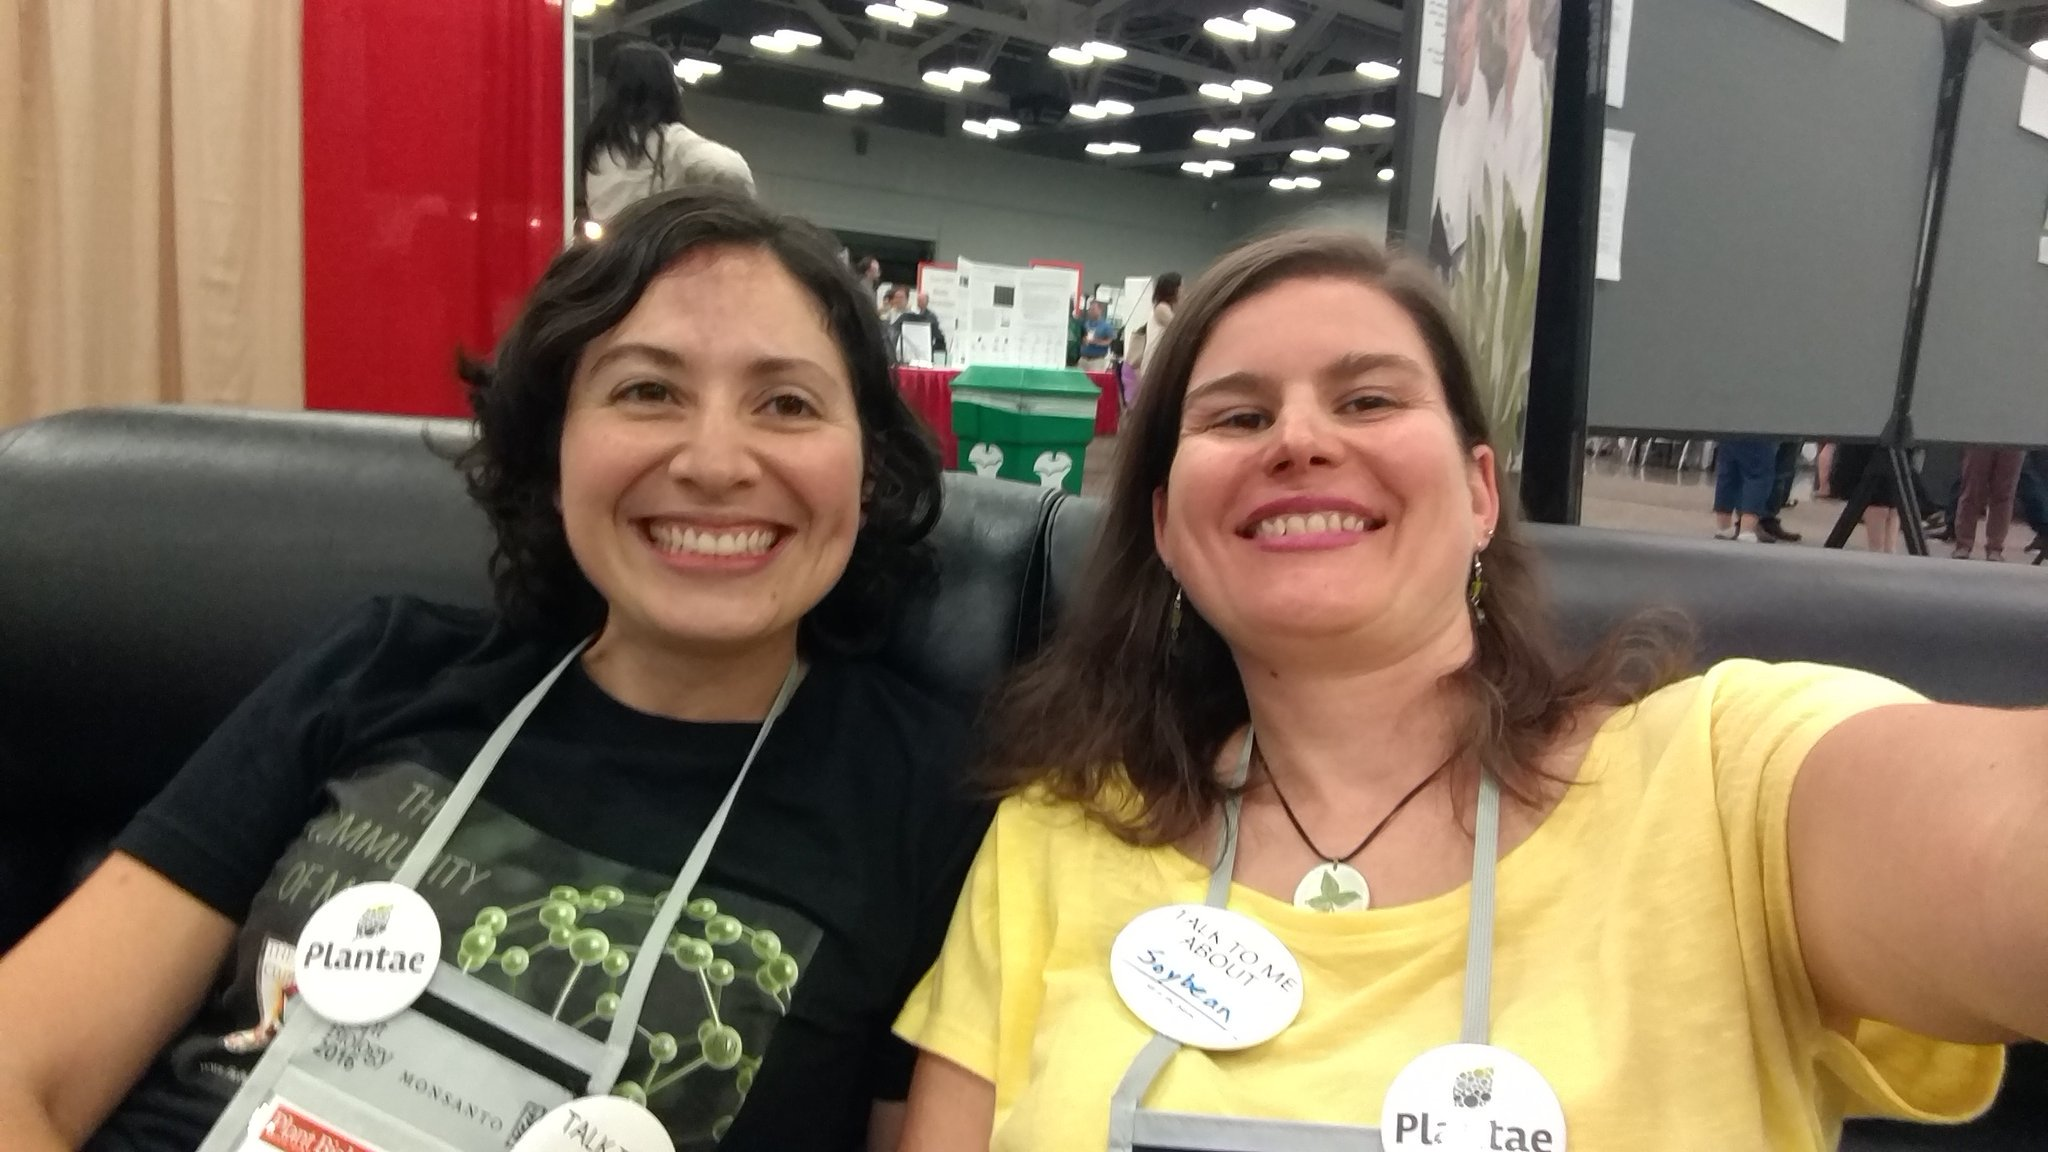 Hanging with new friend @huotbethany #myotherbench #plantbio16 https://t.co/cZf9A0qWAc